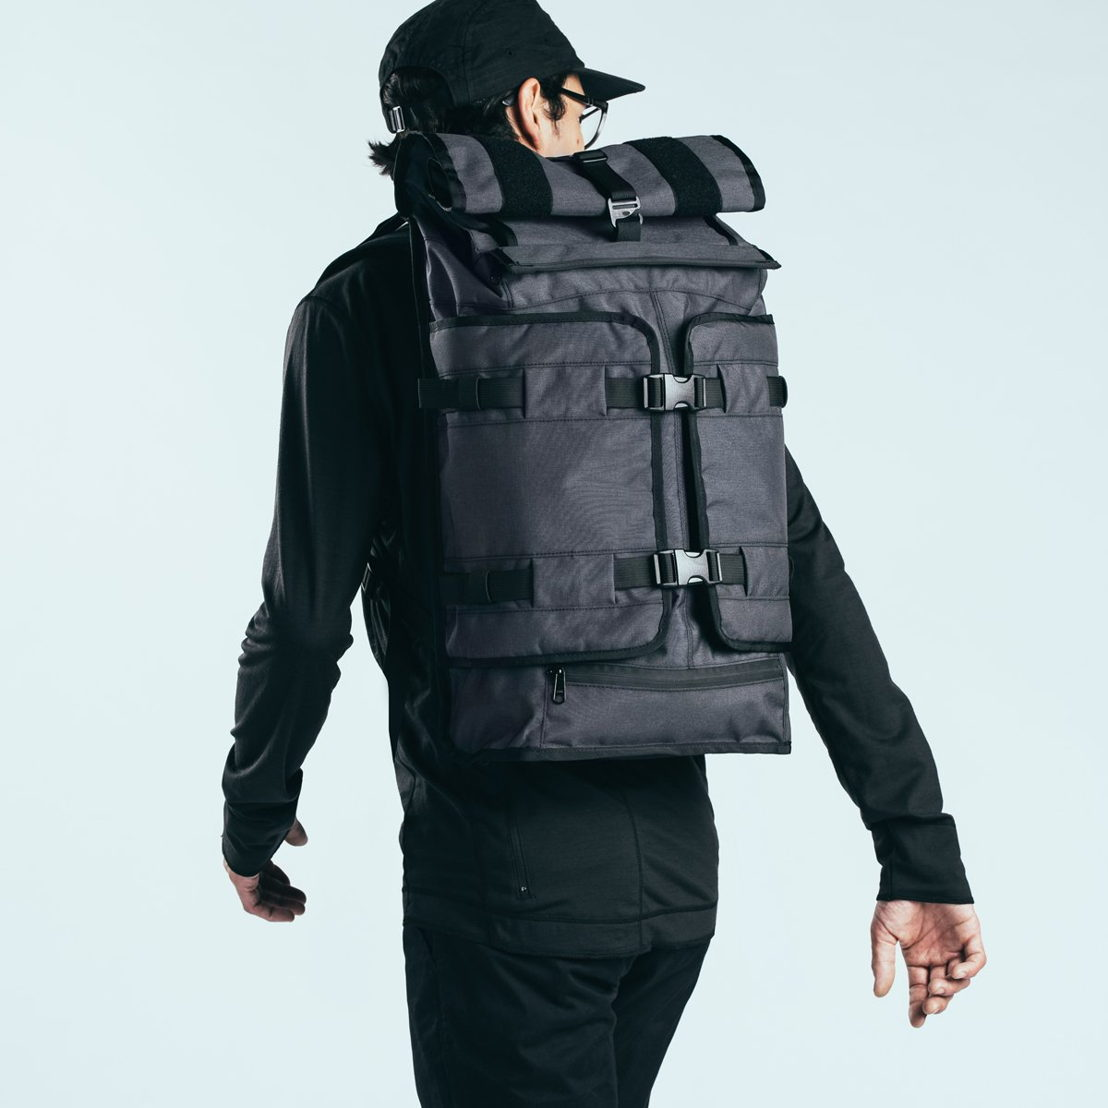 Weatherproof backpack for urban / cycling